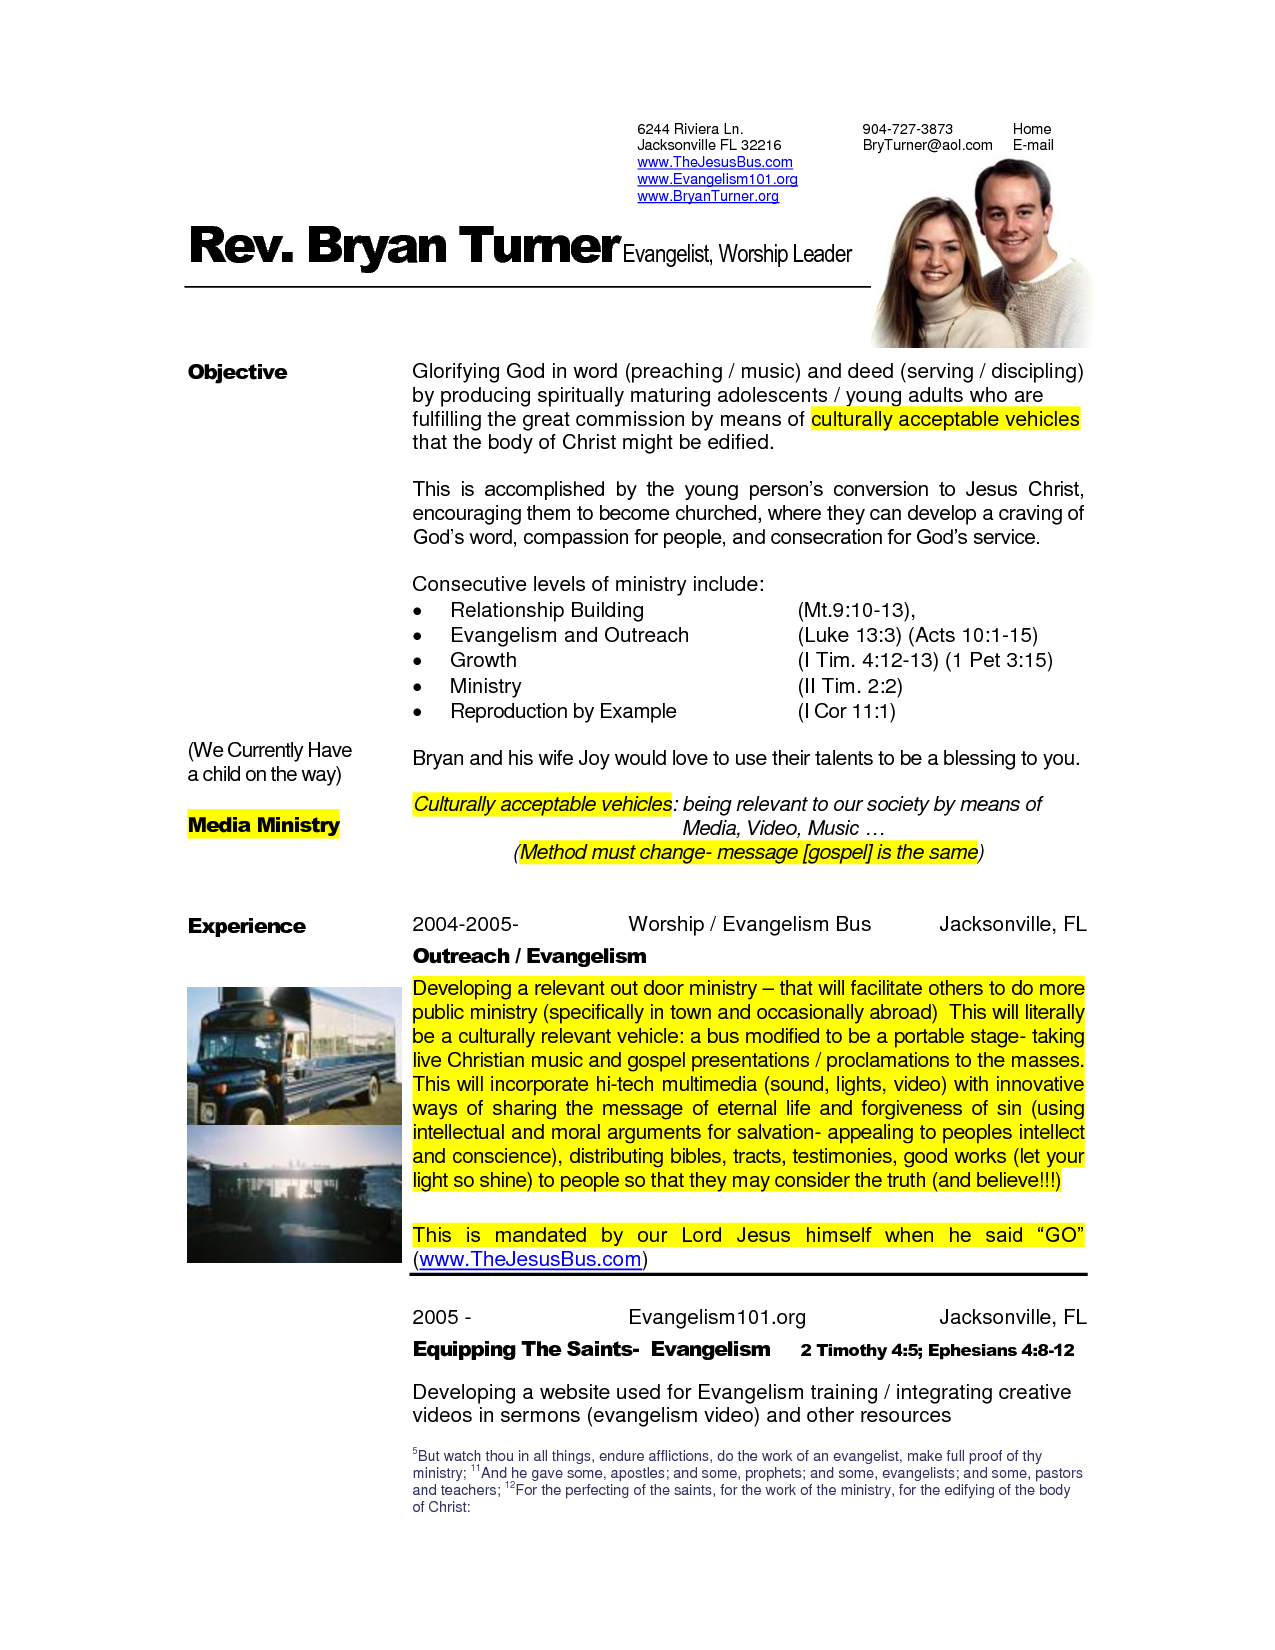 Senior Pastor Resume Free Examples Of Pastoral Resumes  How To Write A Pastor Resume .